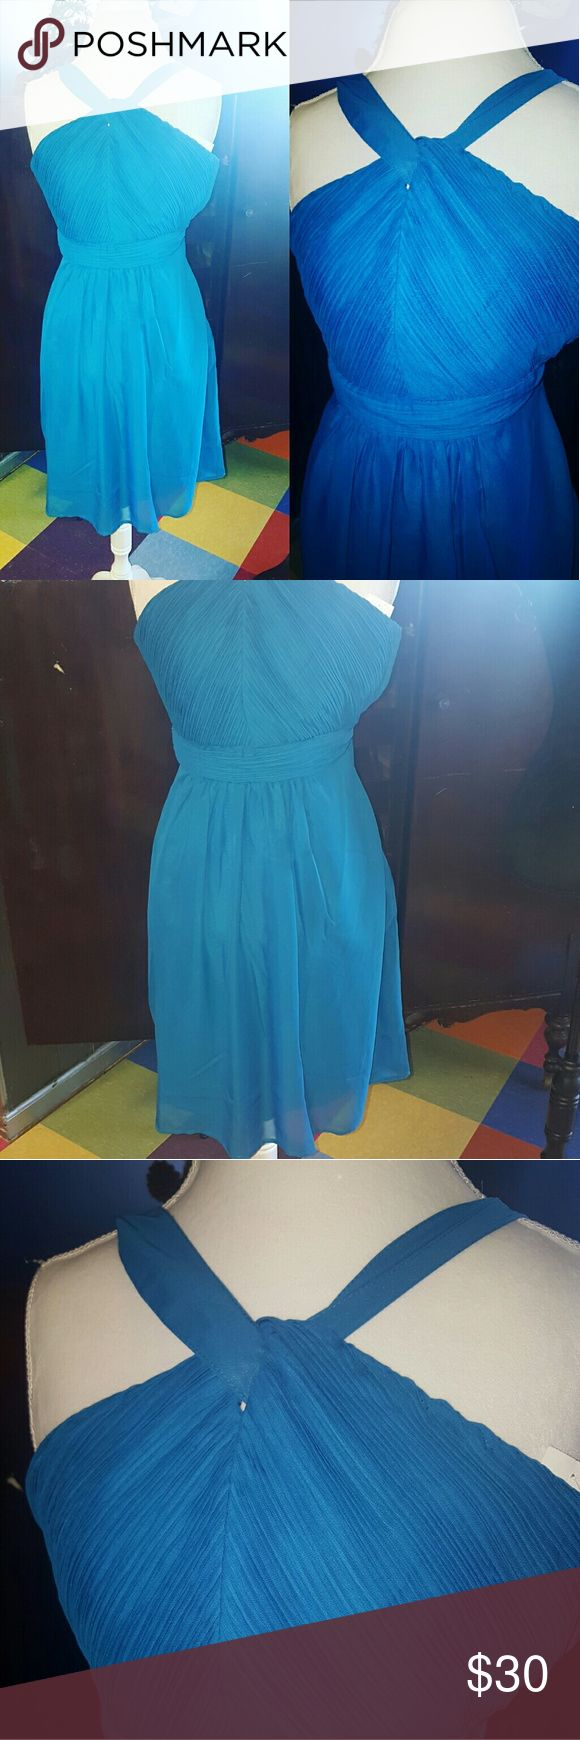 Tevolio royal blue halter cocktail dress nwt This dress is in perfect condition and beautiful. Perfect for a wedding or garden party tevolio Dresses